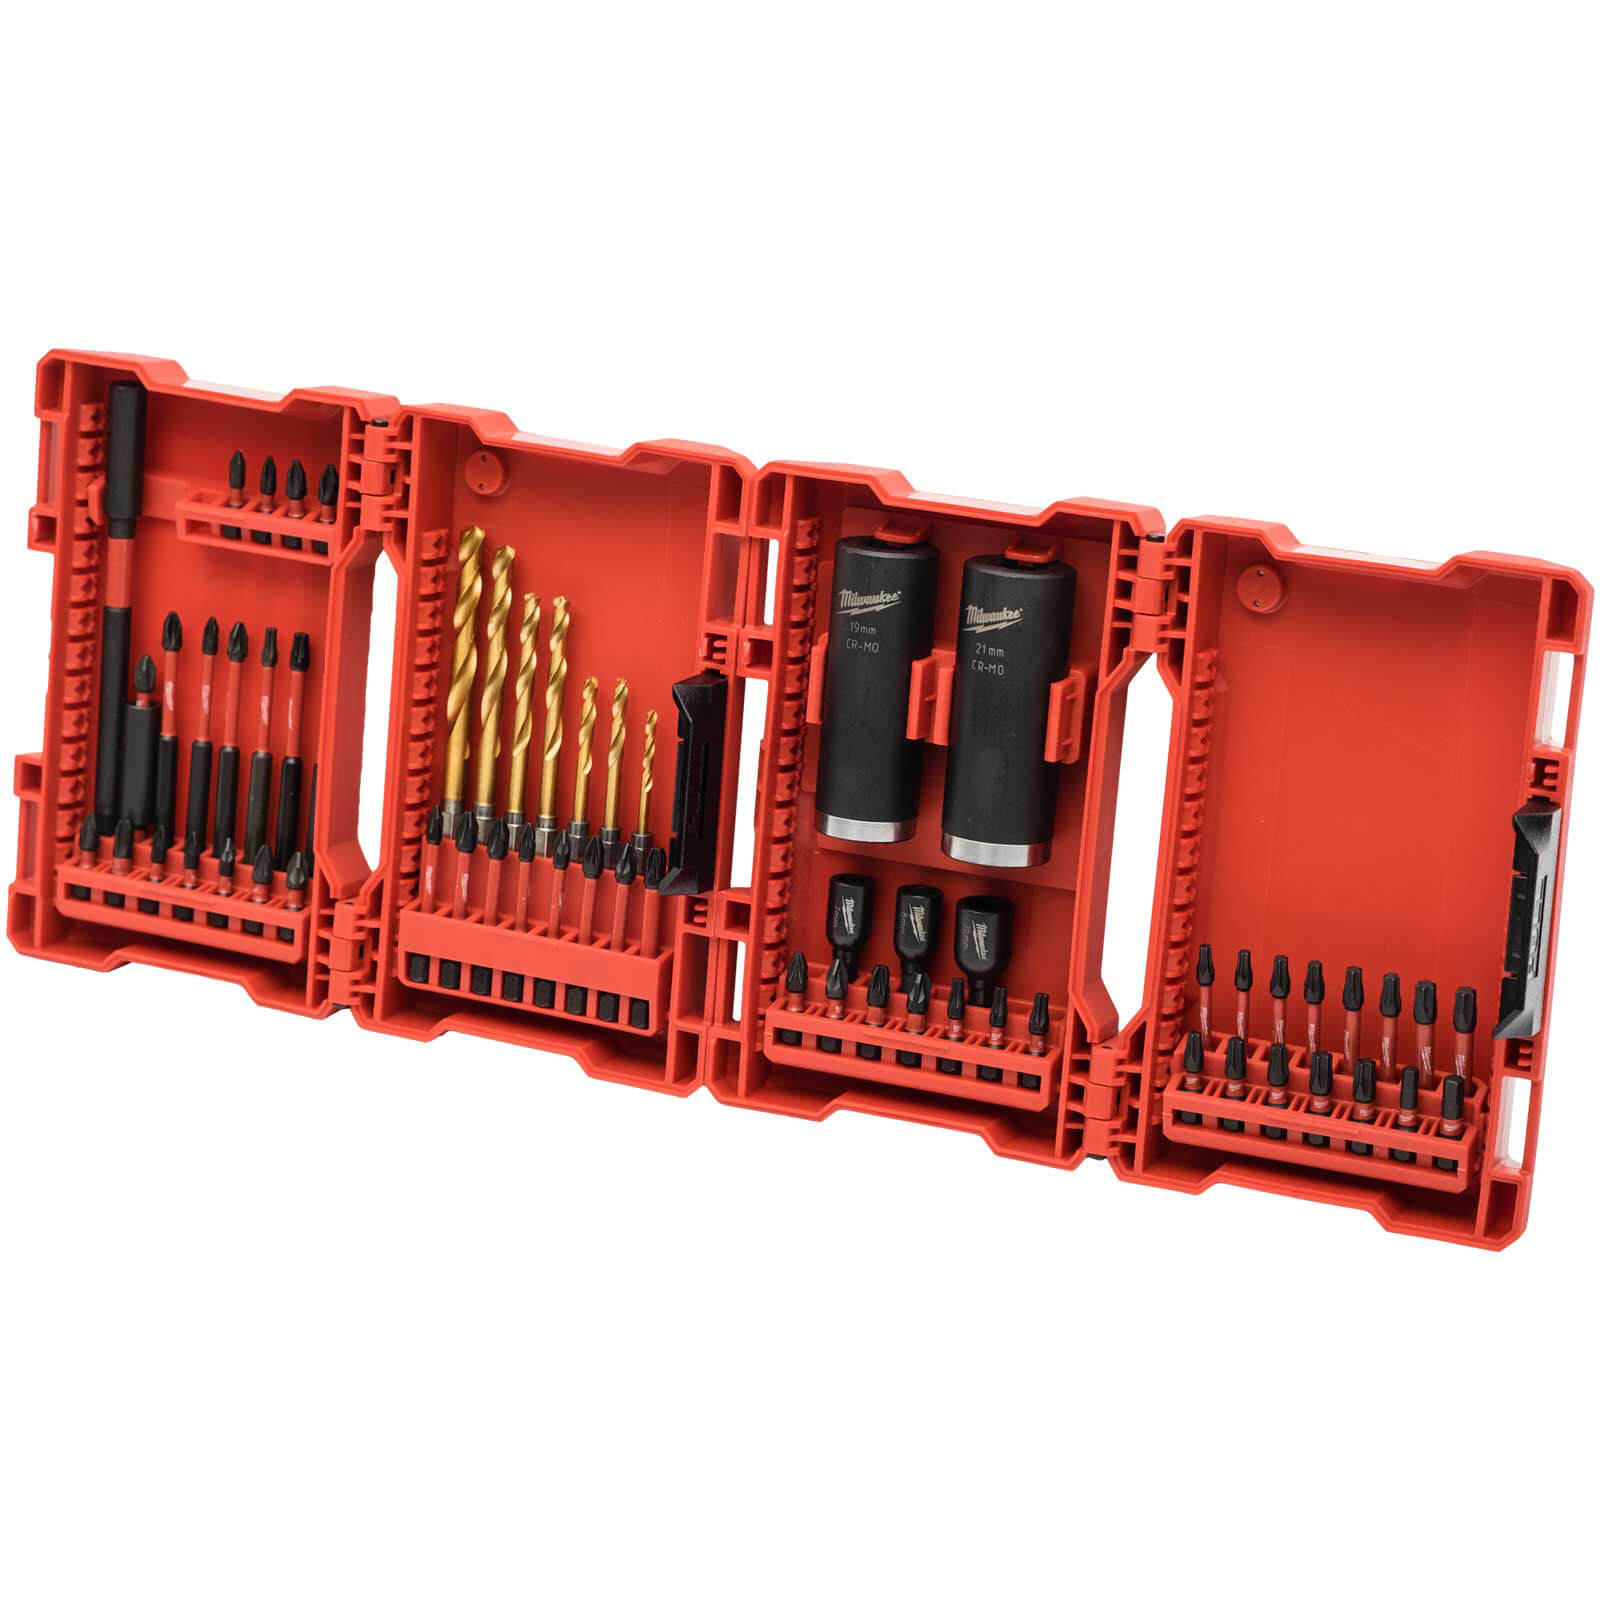 Image of Milwaukee 62 Piece Shockwave Impact Drill and Screwdriver Bit Set